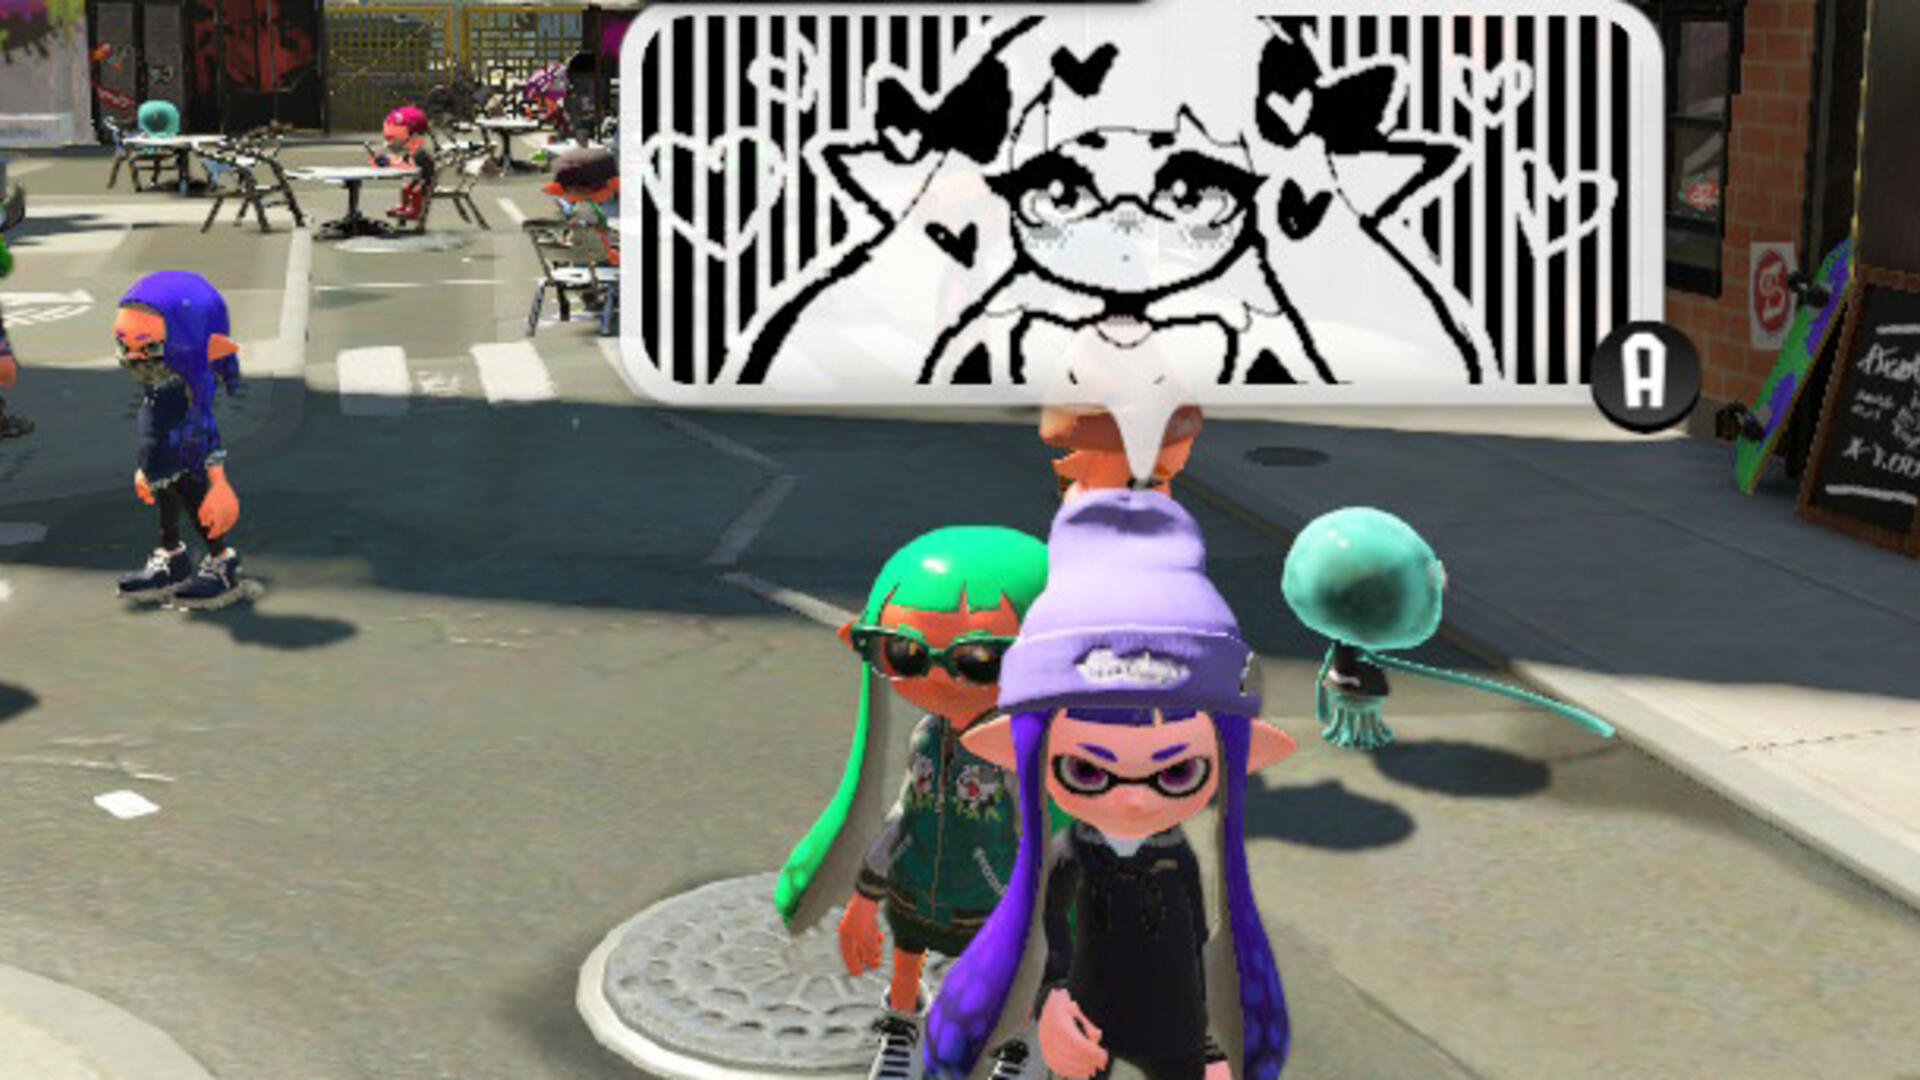 The Wii U's Wild Miiverse Lives on in Splatoon 2's Fresh Ecosystem